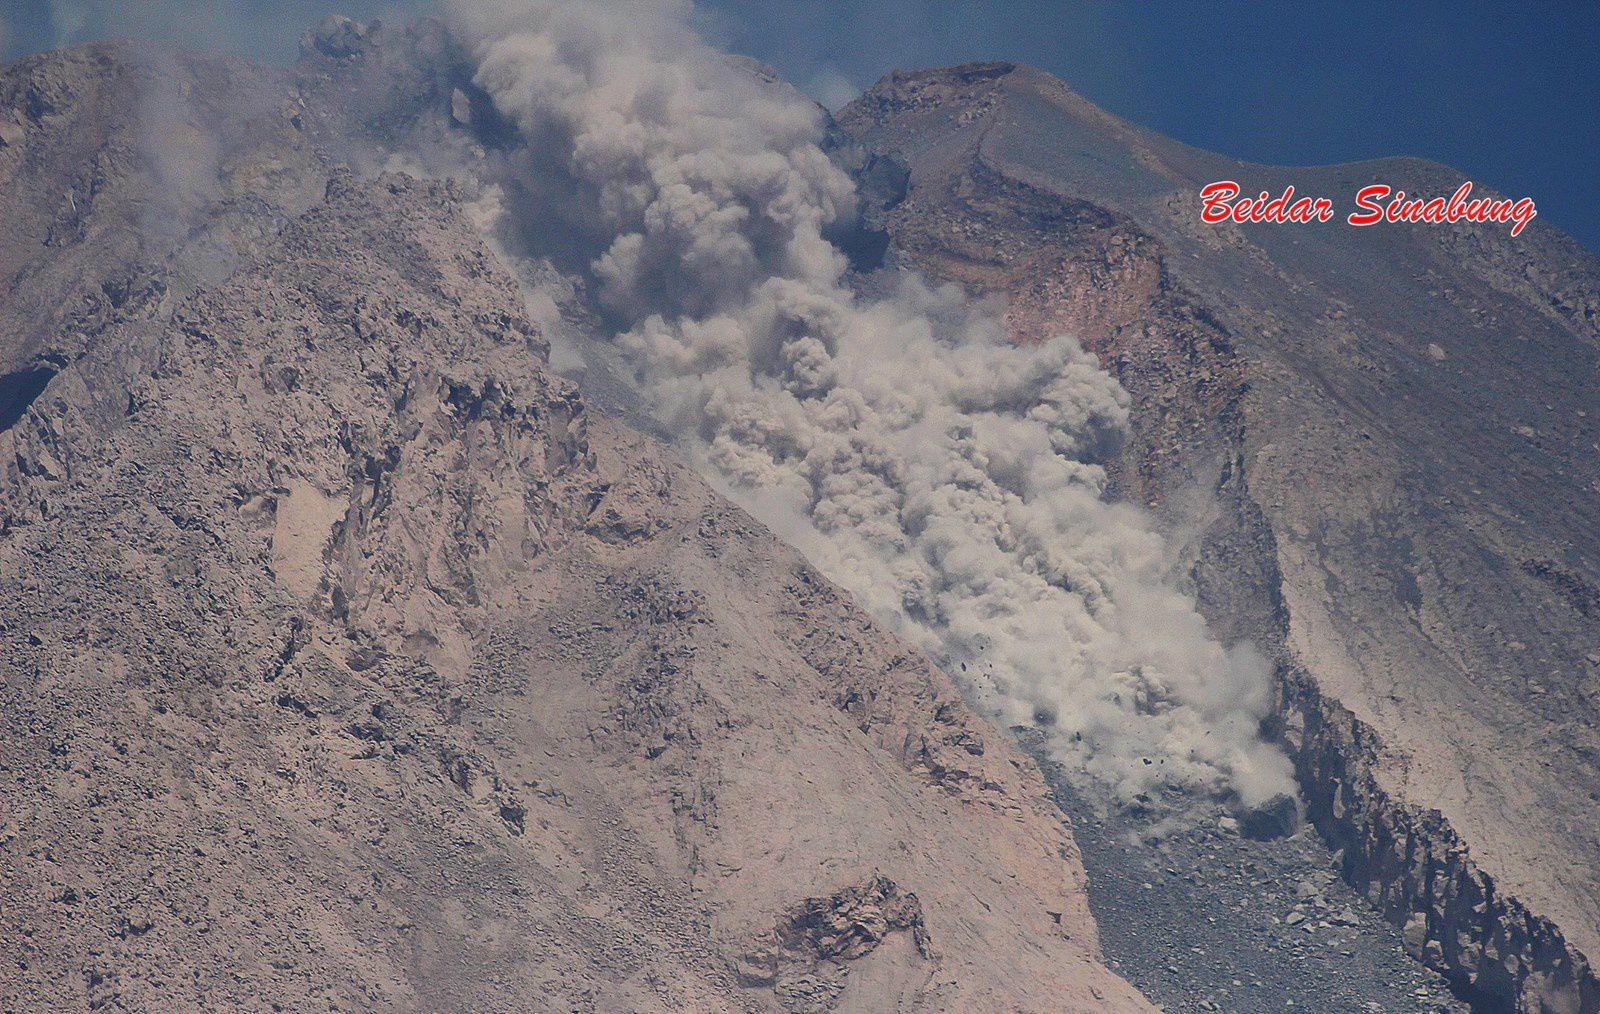 Sinabung - 03.19.2016 / 10:22 Pyroclastic flow channeled from the top